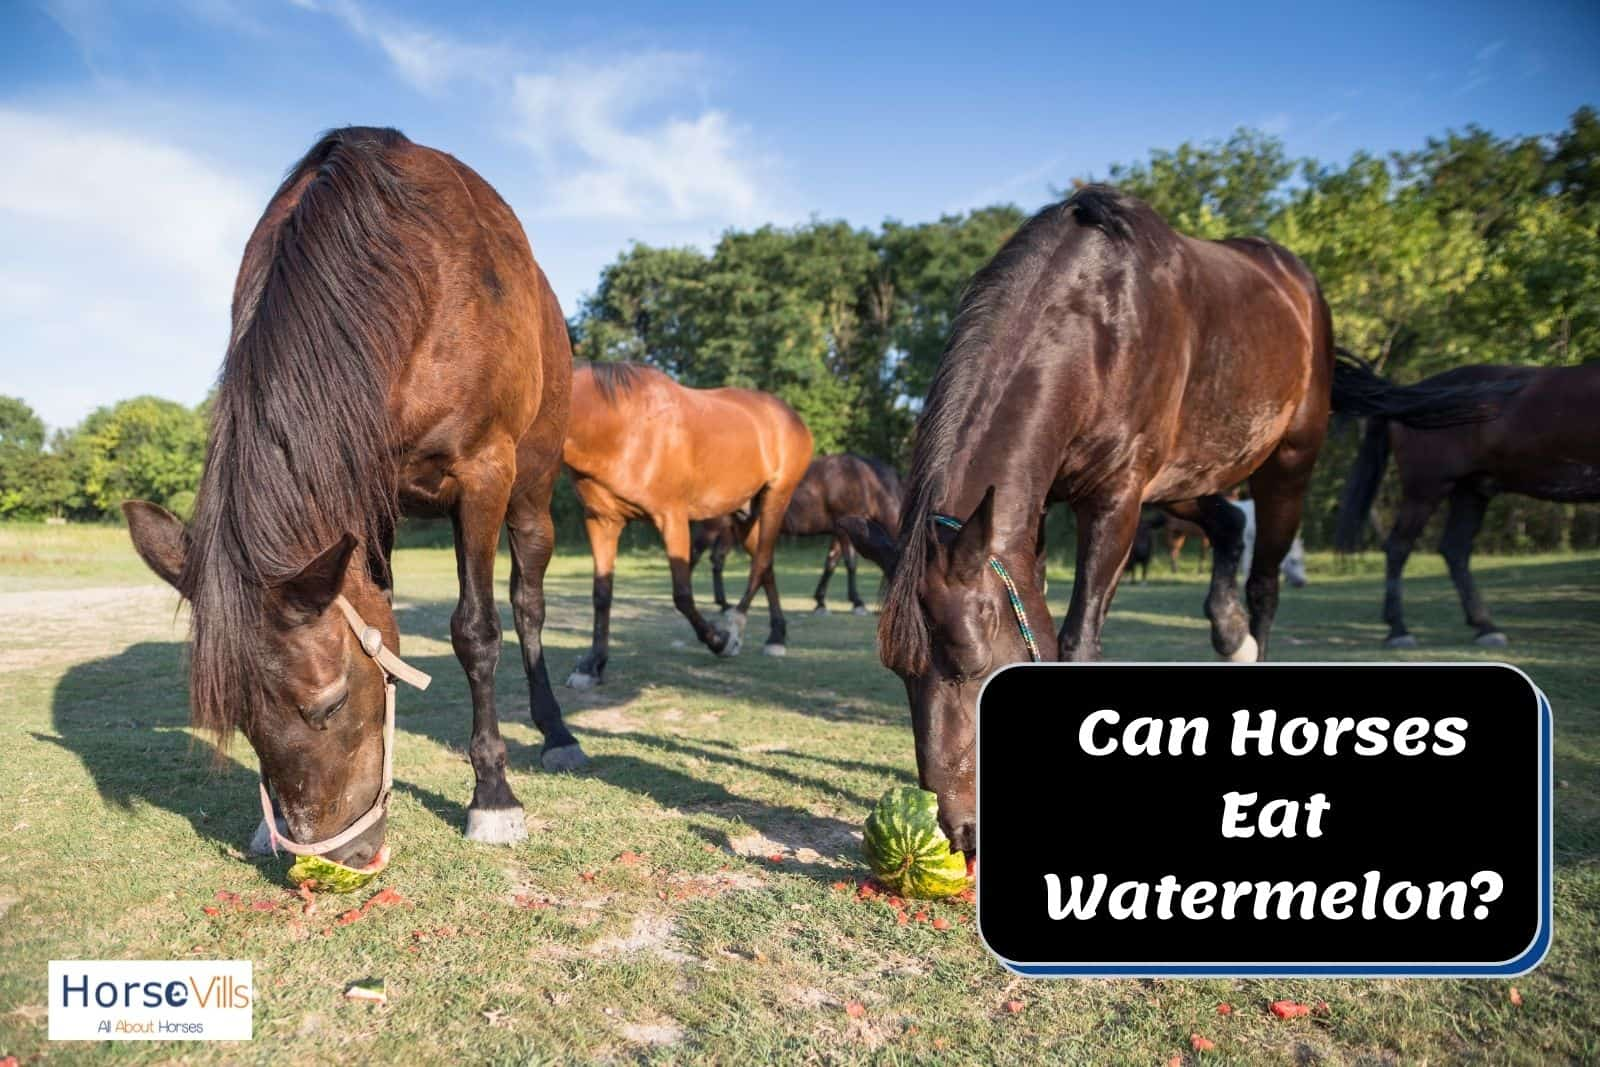 Friesian eating fresh watermelons but can horses eat watermelons? Are they safe?